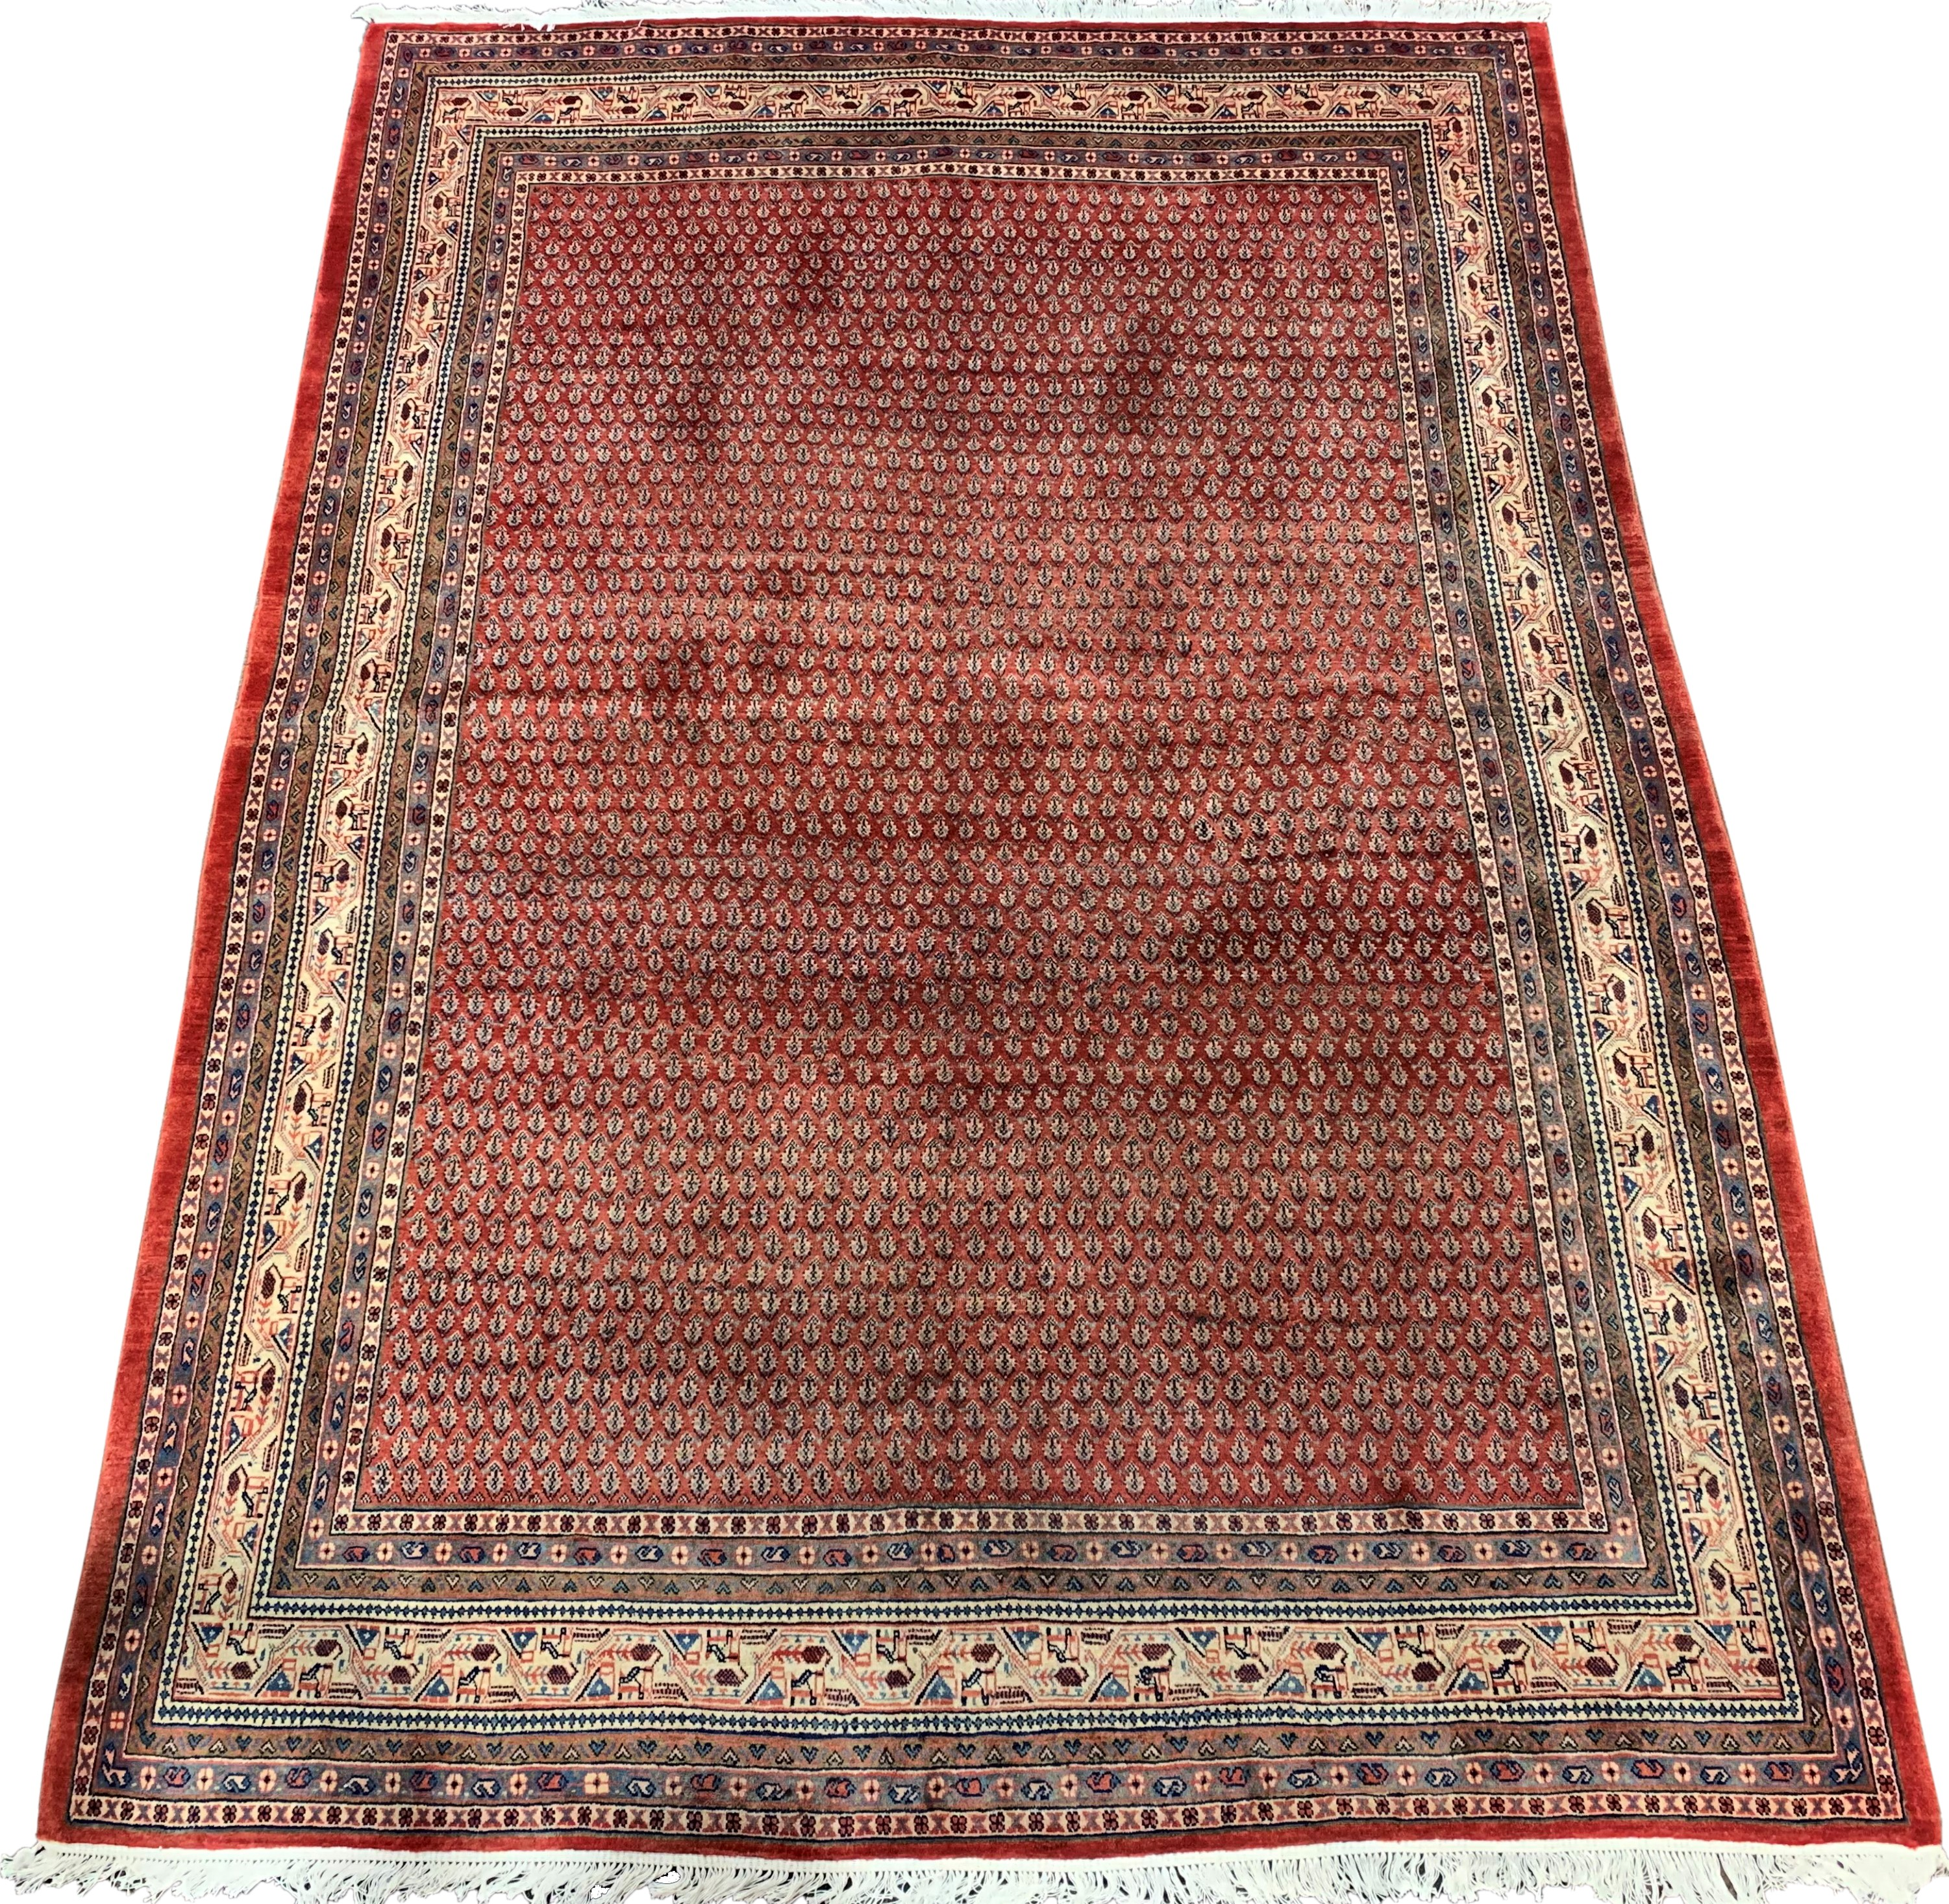 Large Persian Araak carpet, red ground field decorated all over with Boteh motifs, multiple band